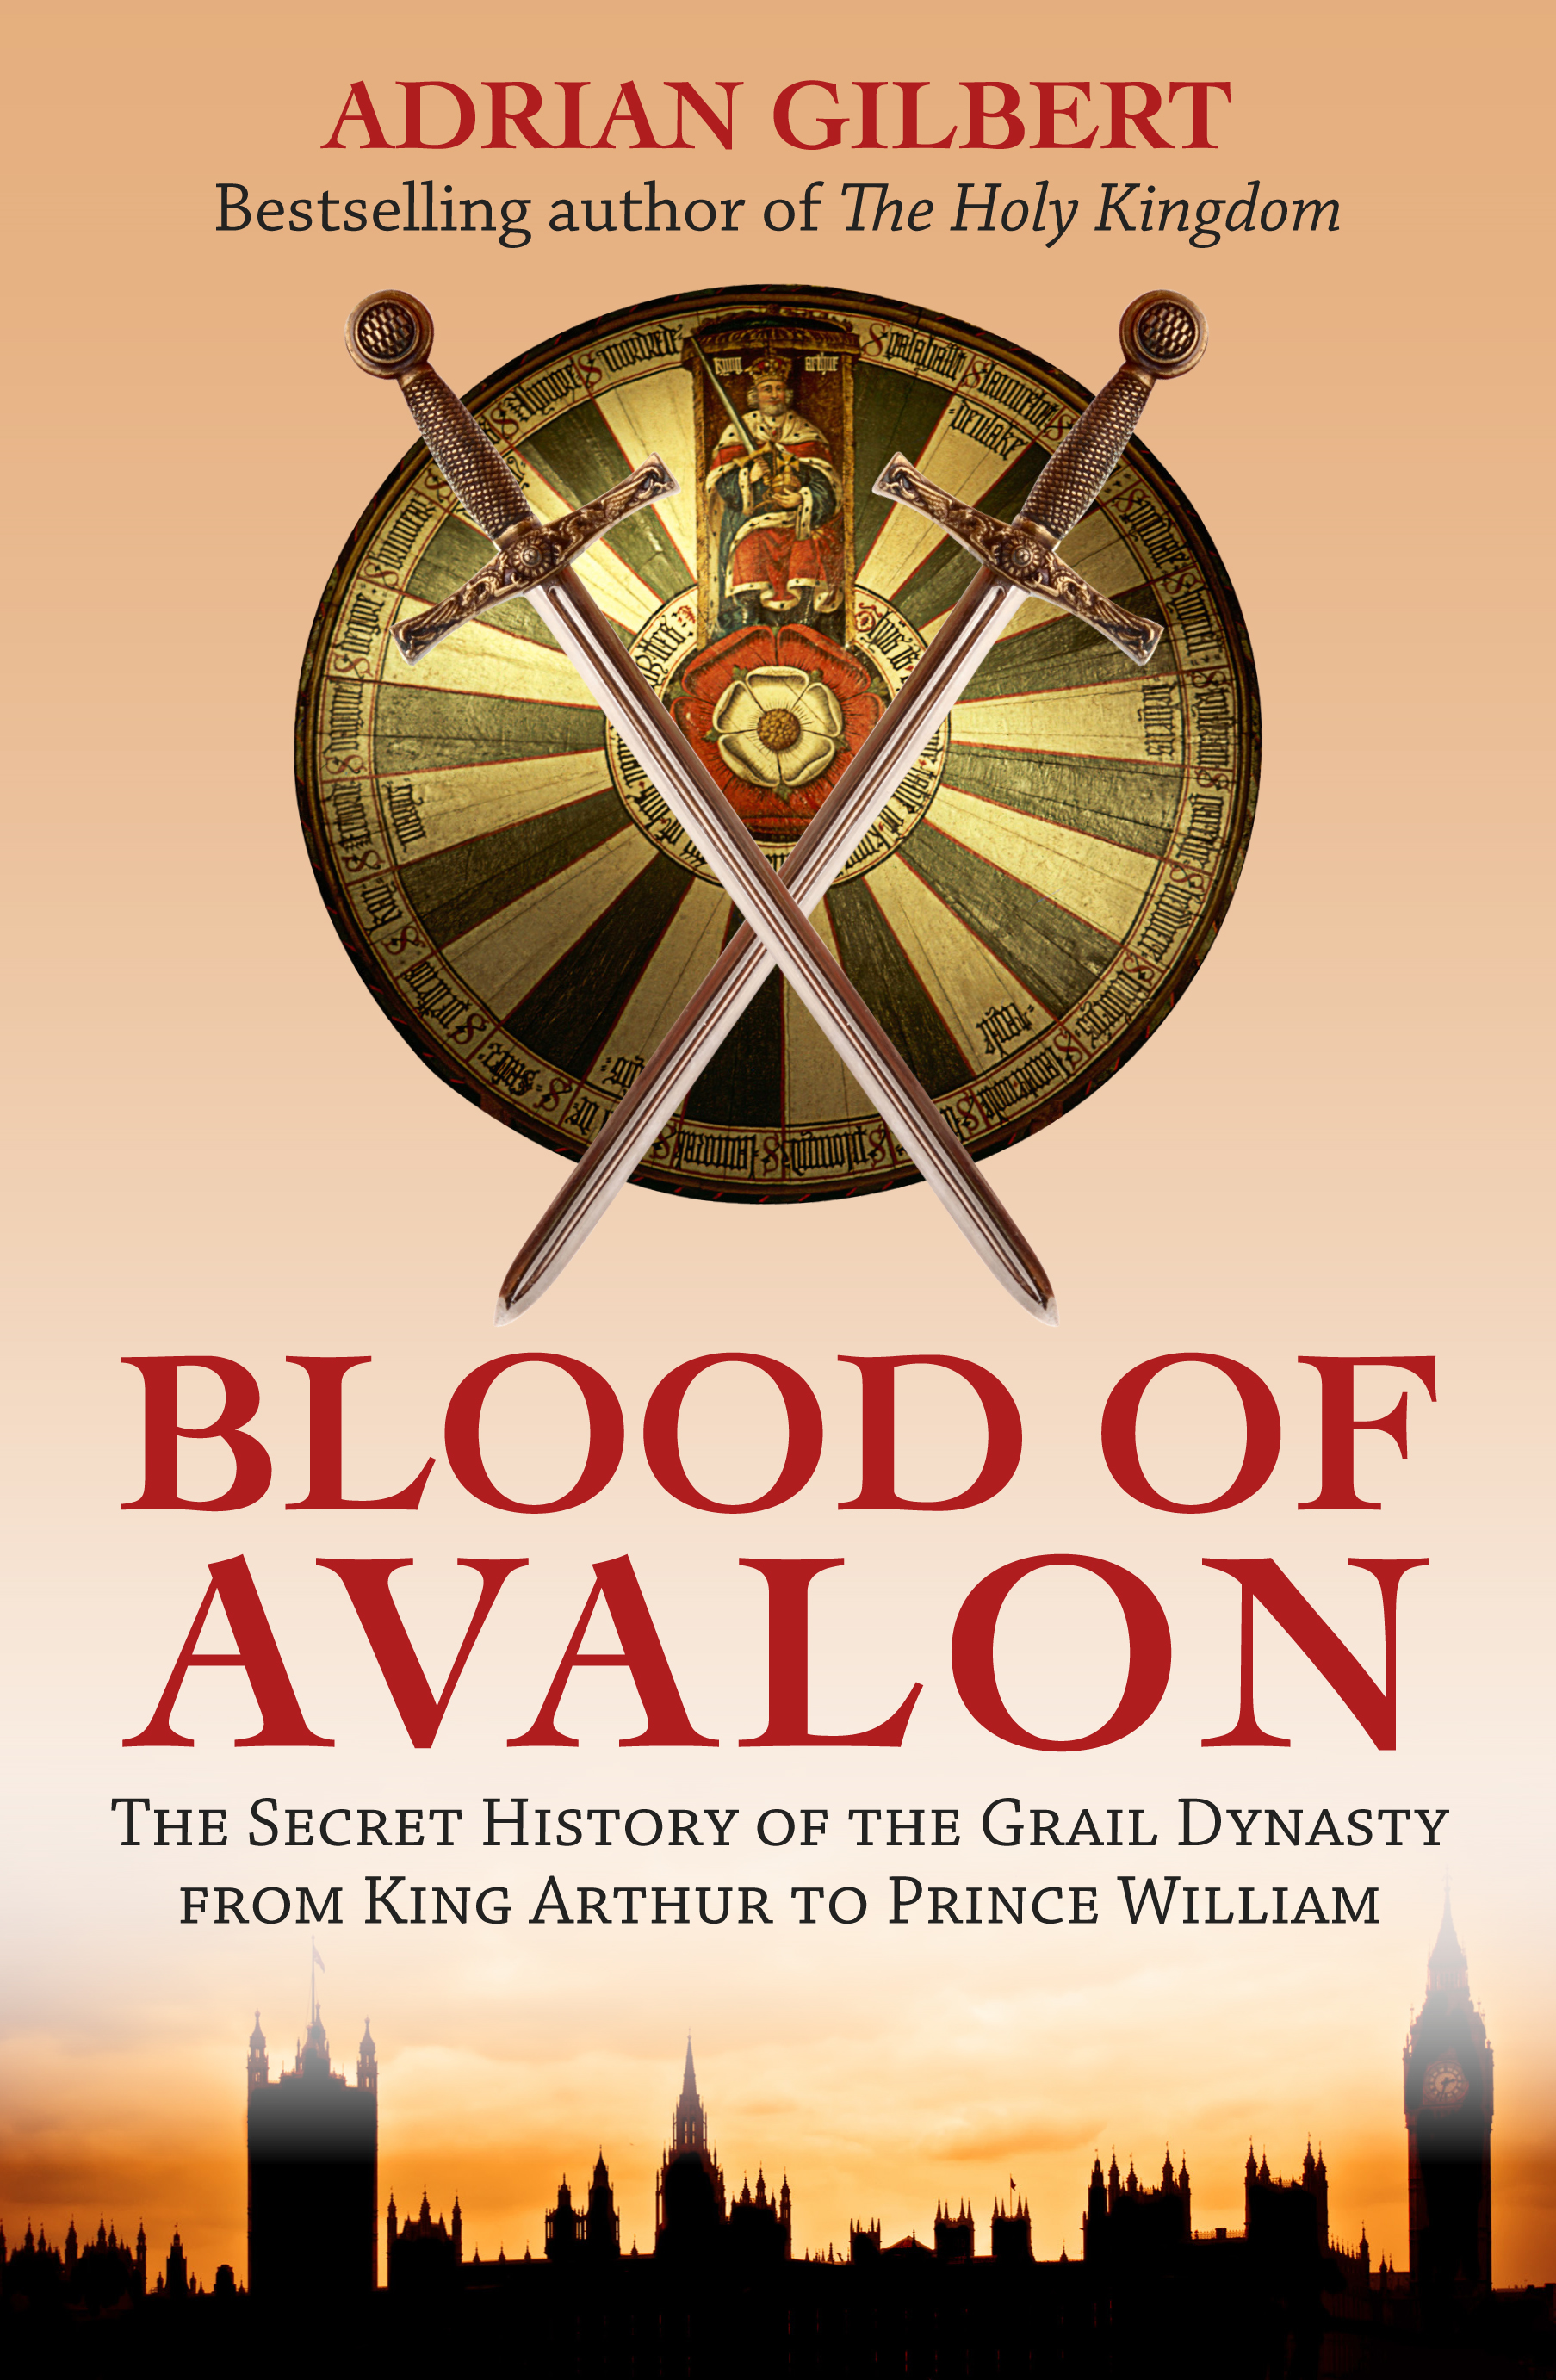 The Blood of Avalon - The Secret History of the Grail Dynasty from King Arthur to Prince William